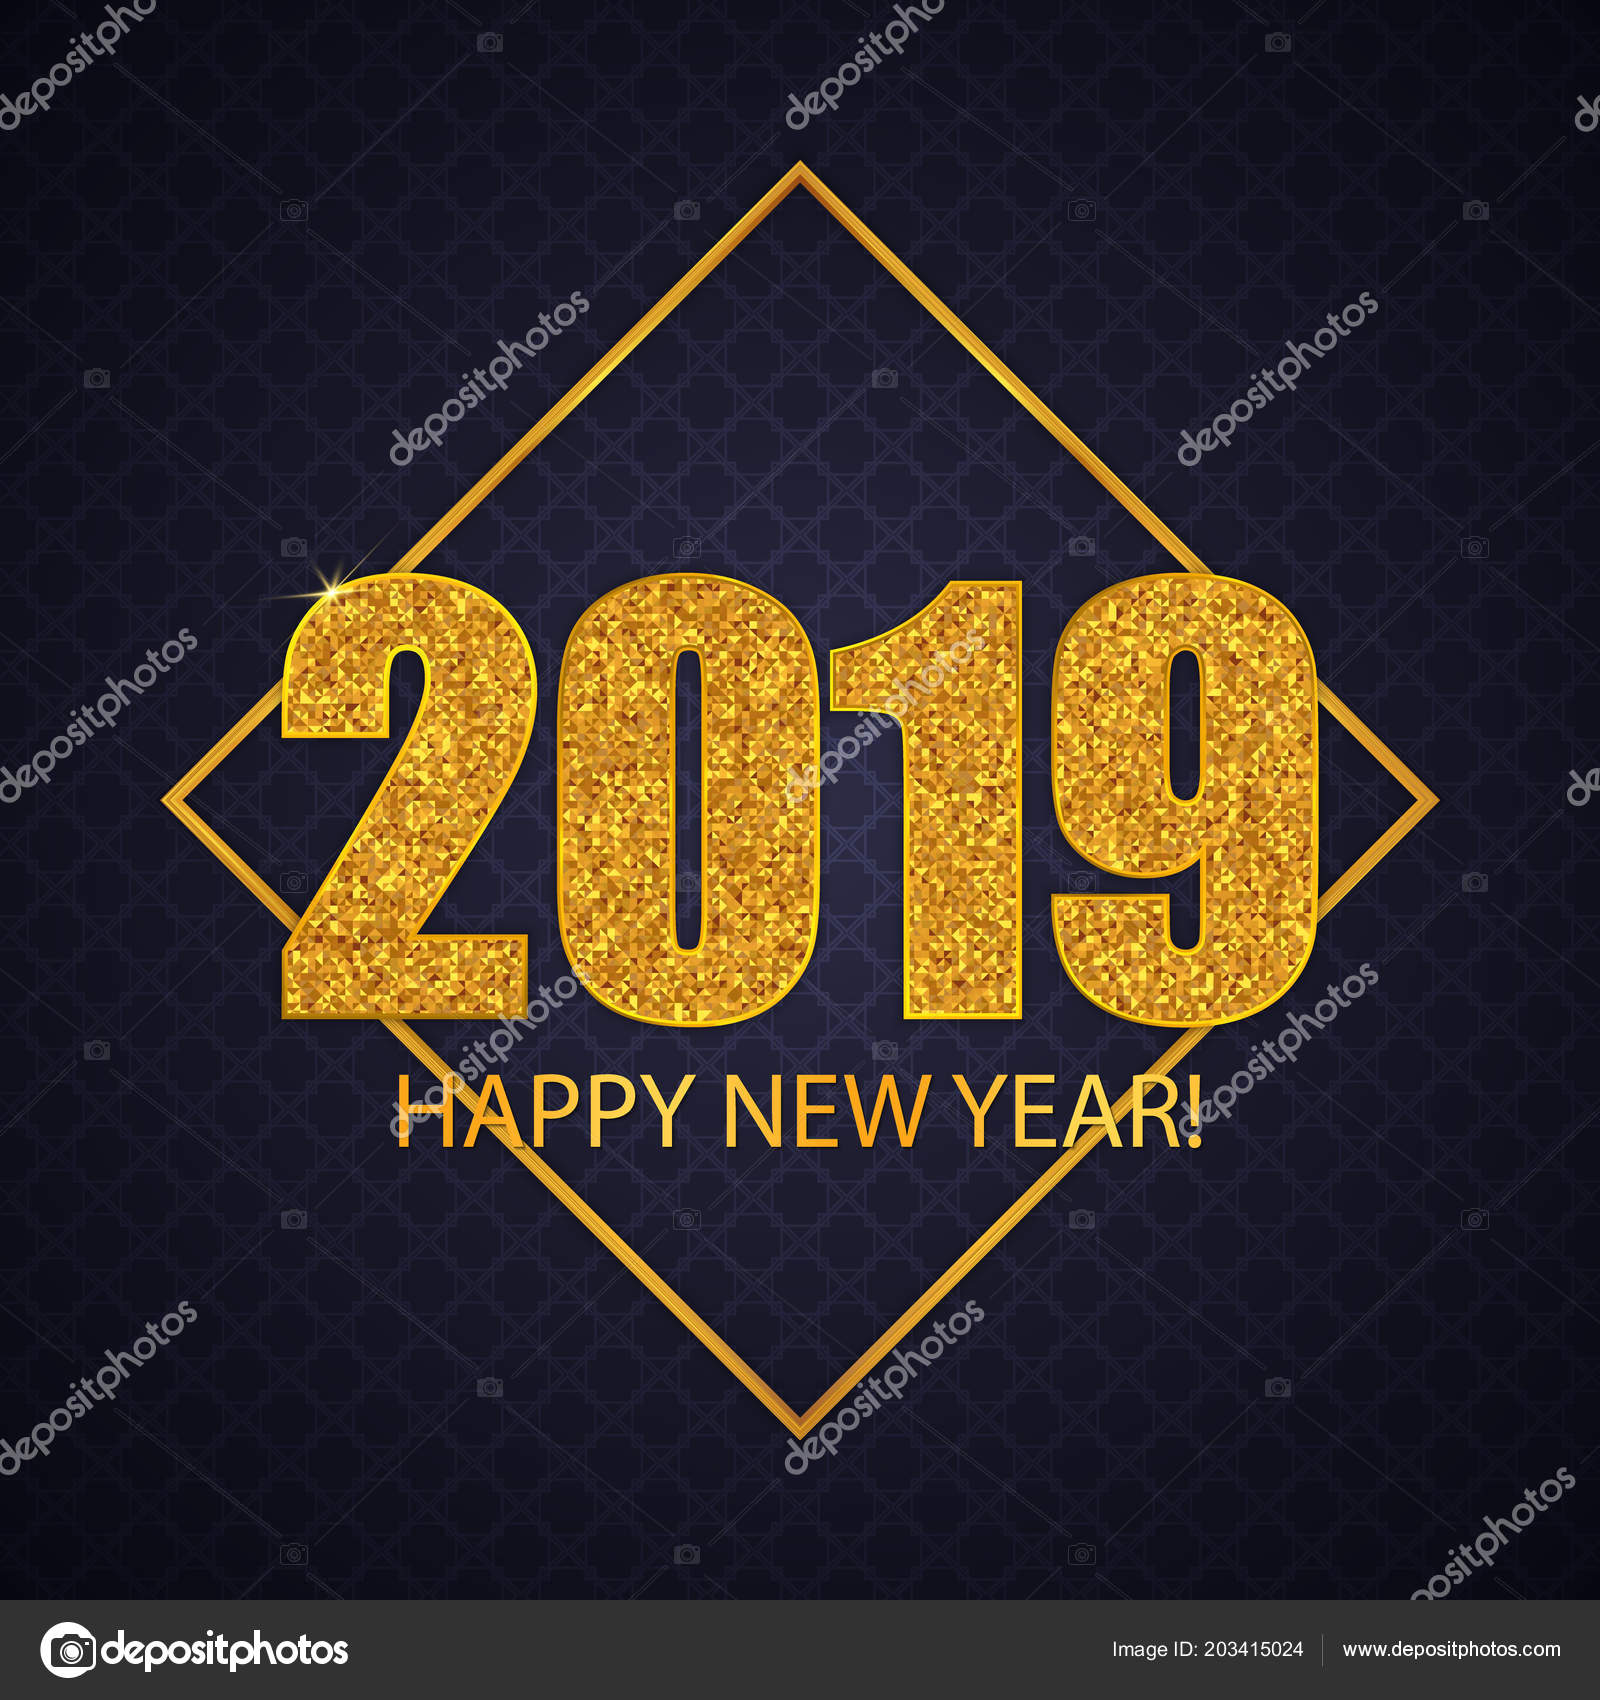 2019 happy new year greeting card design gold glitter numbers stock vector